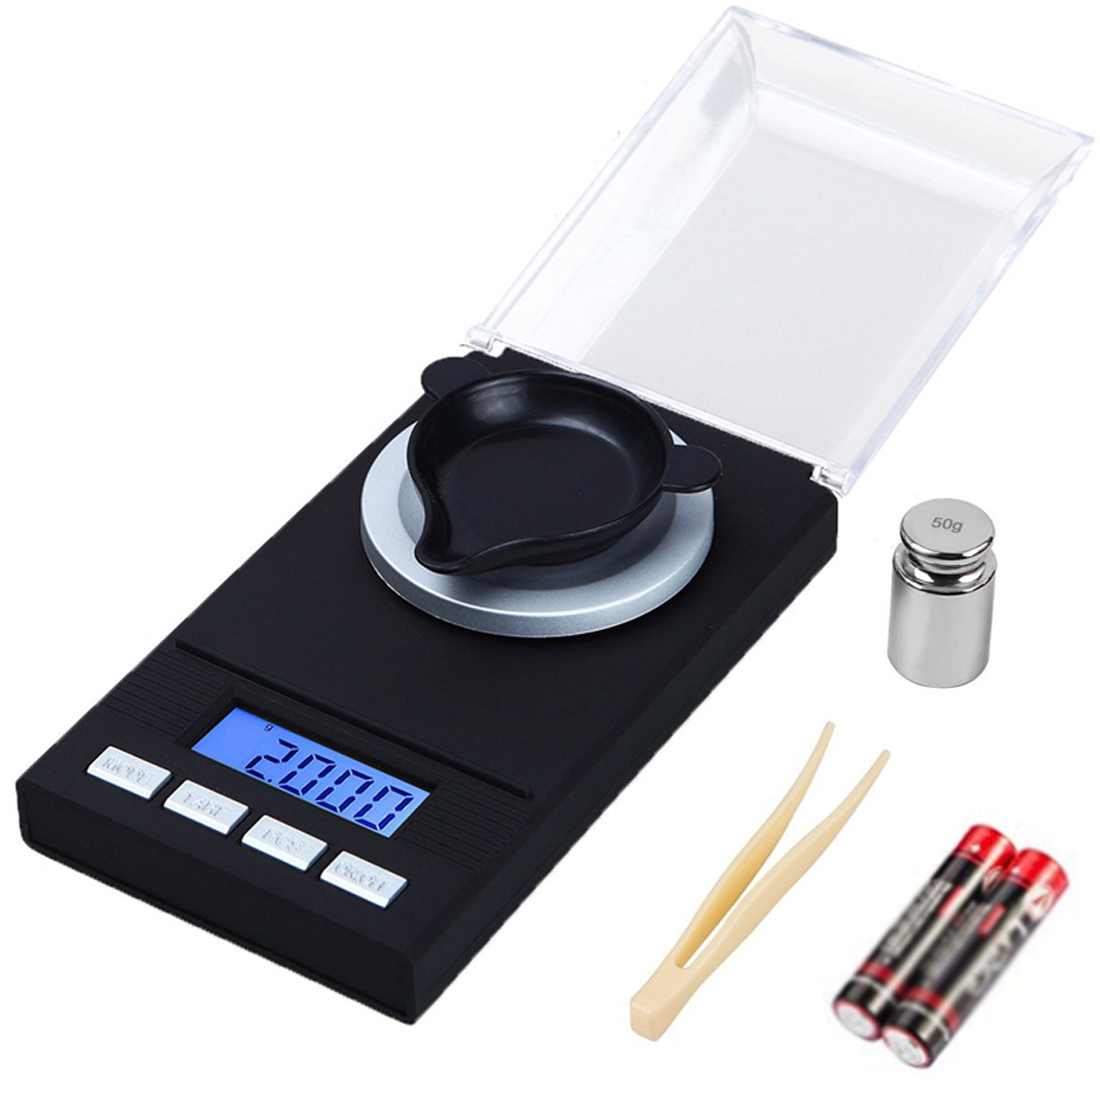 10g-100g LCD Digital Electronic Pocket Scales for Weighing Gold Jewellery Herbs